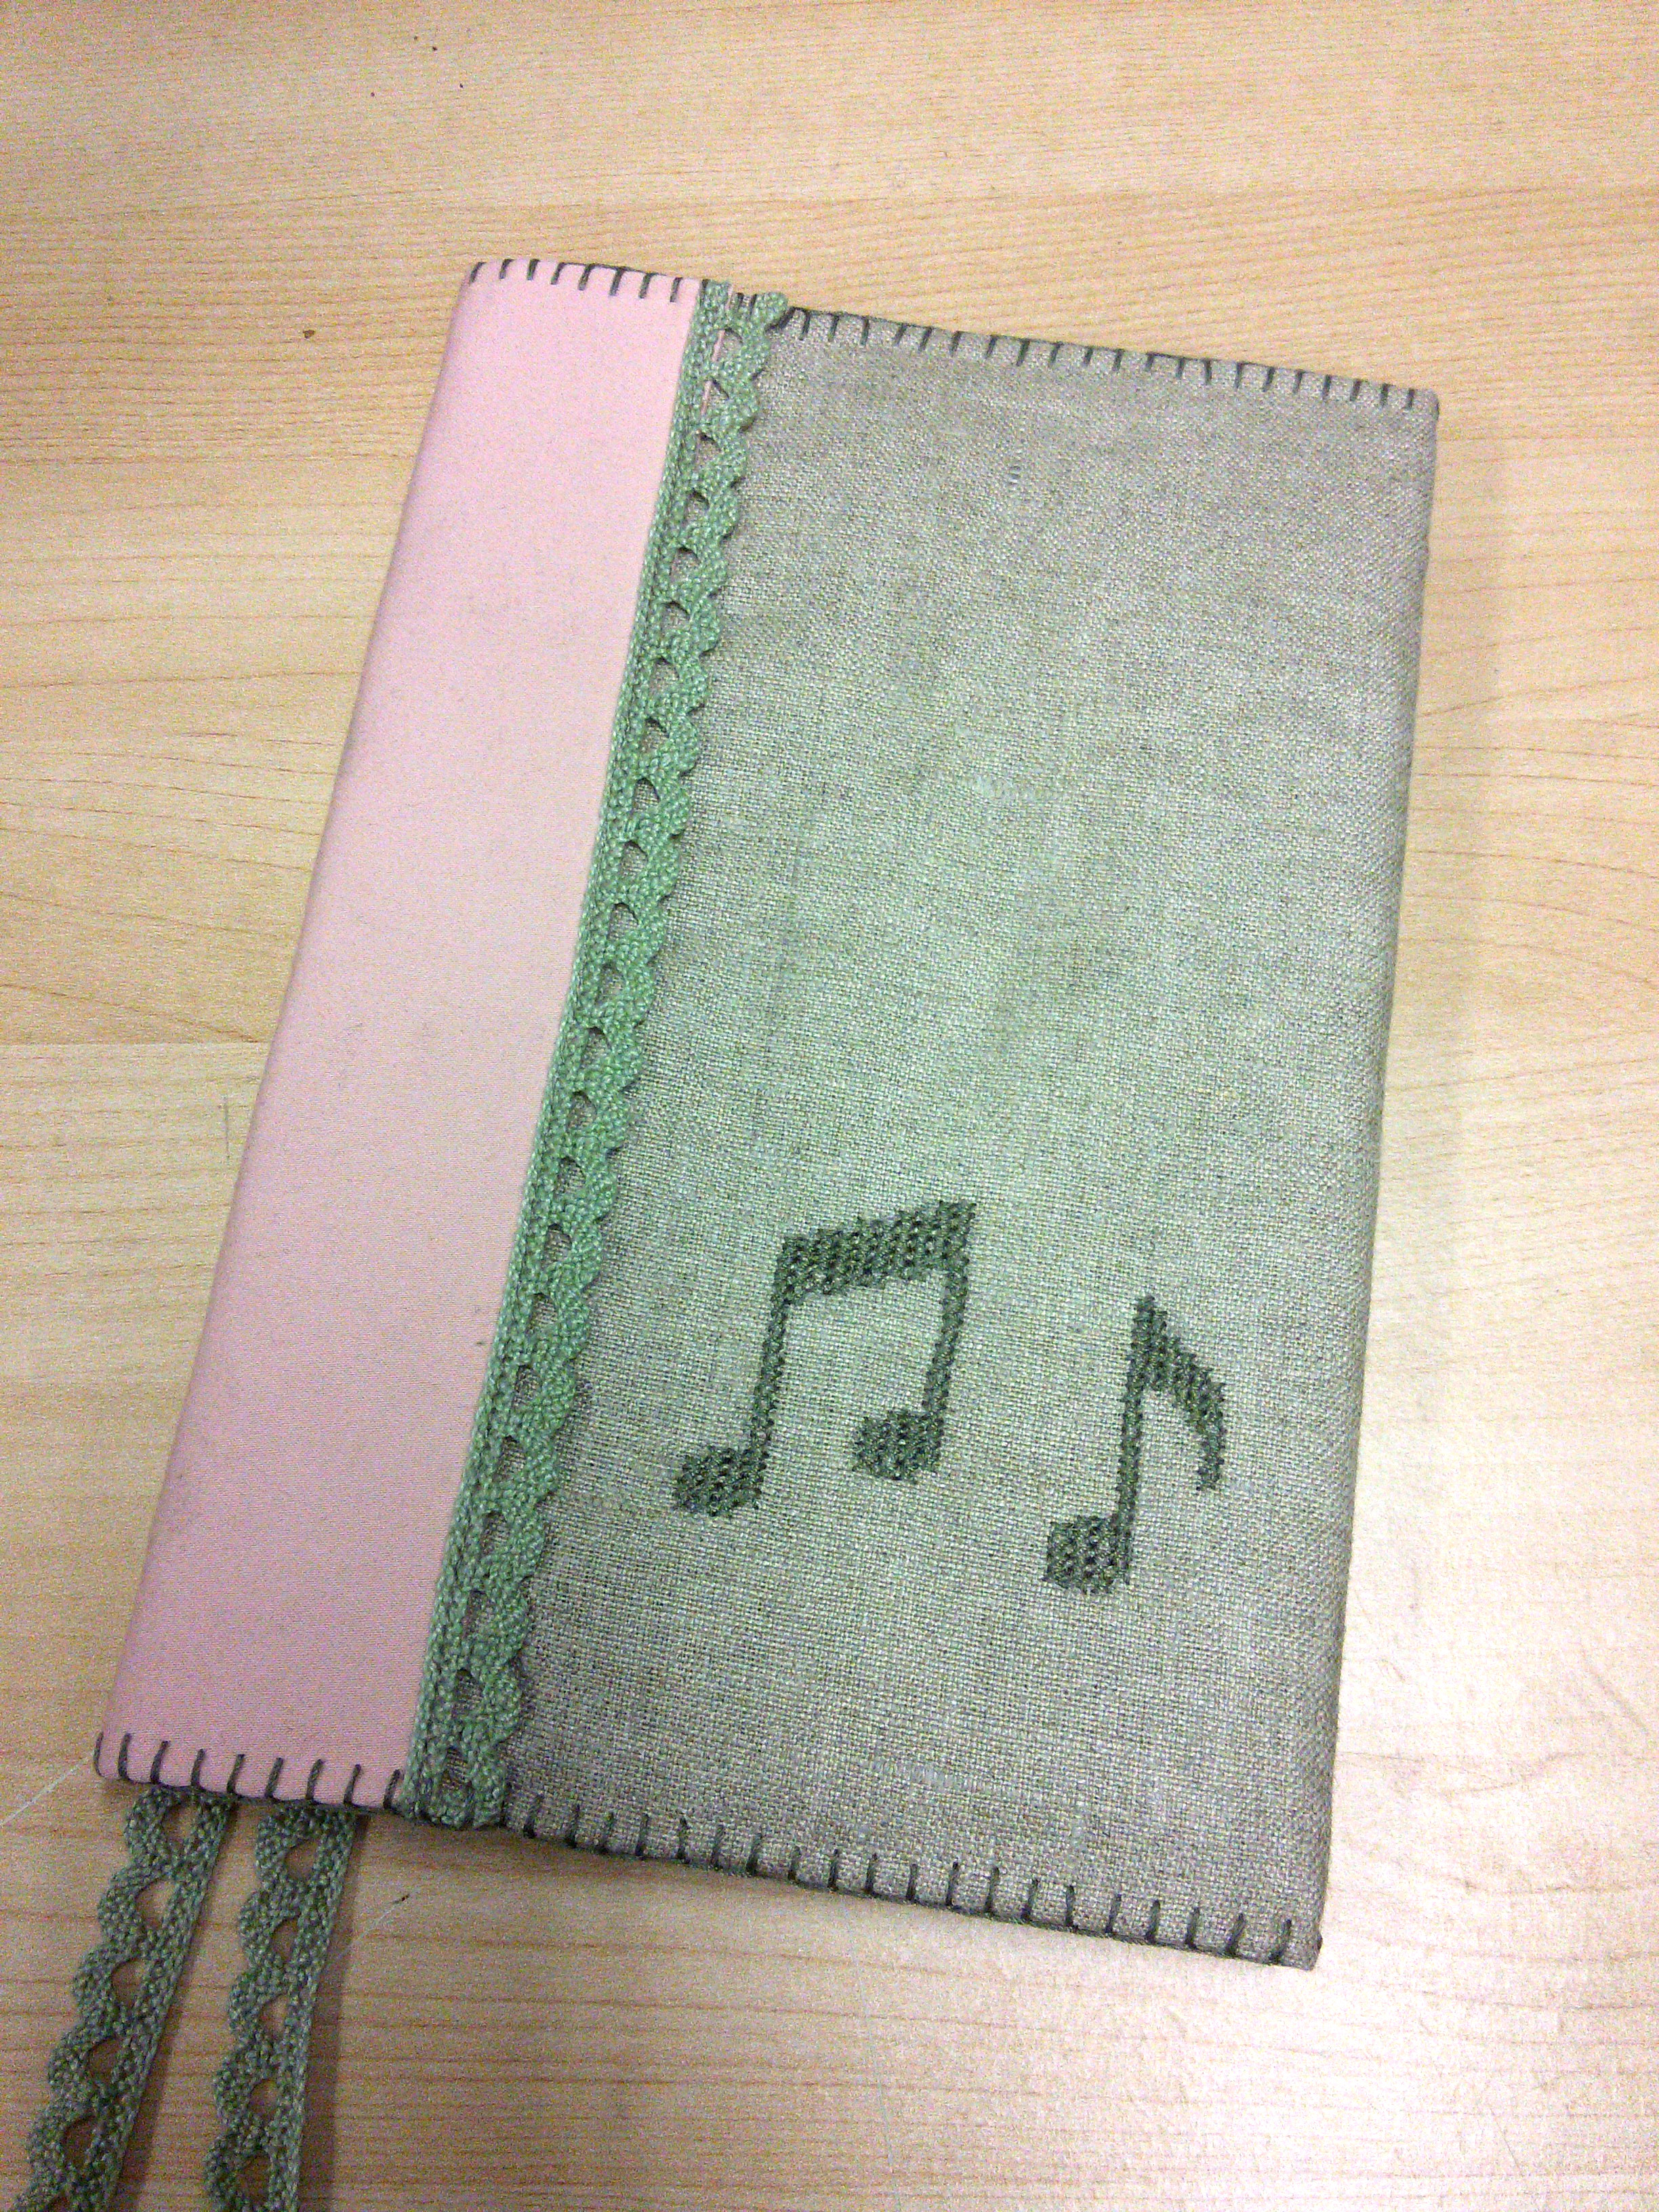 A photo of my songbook's cover.